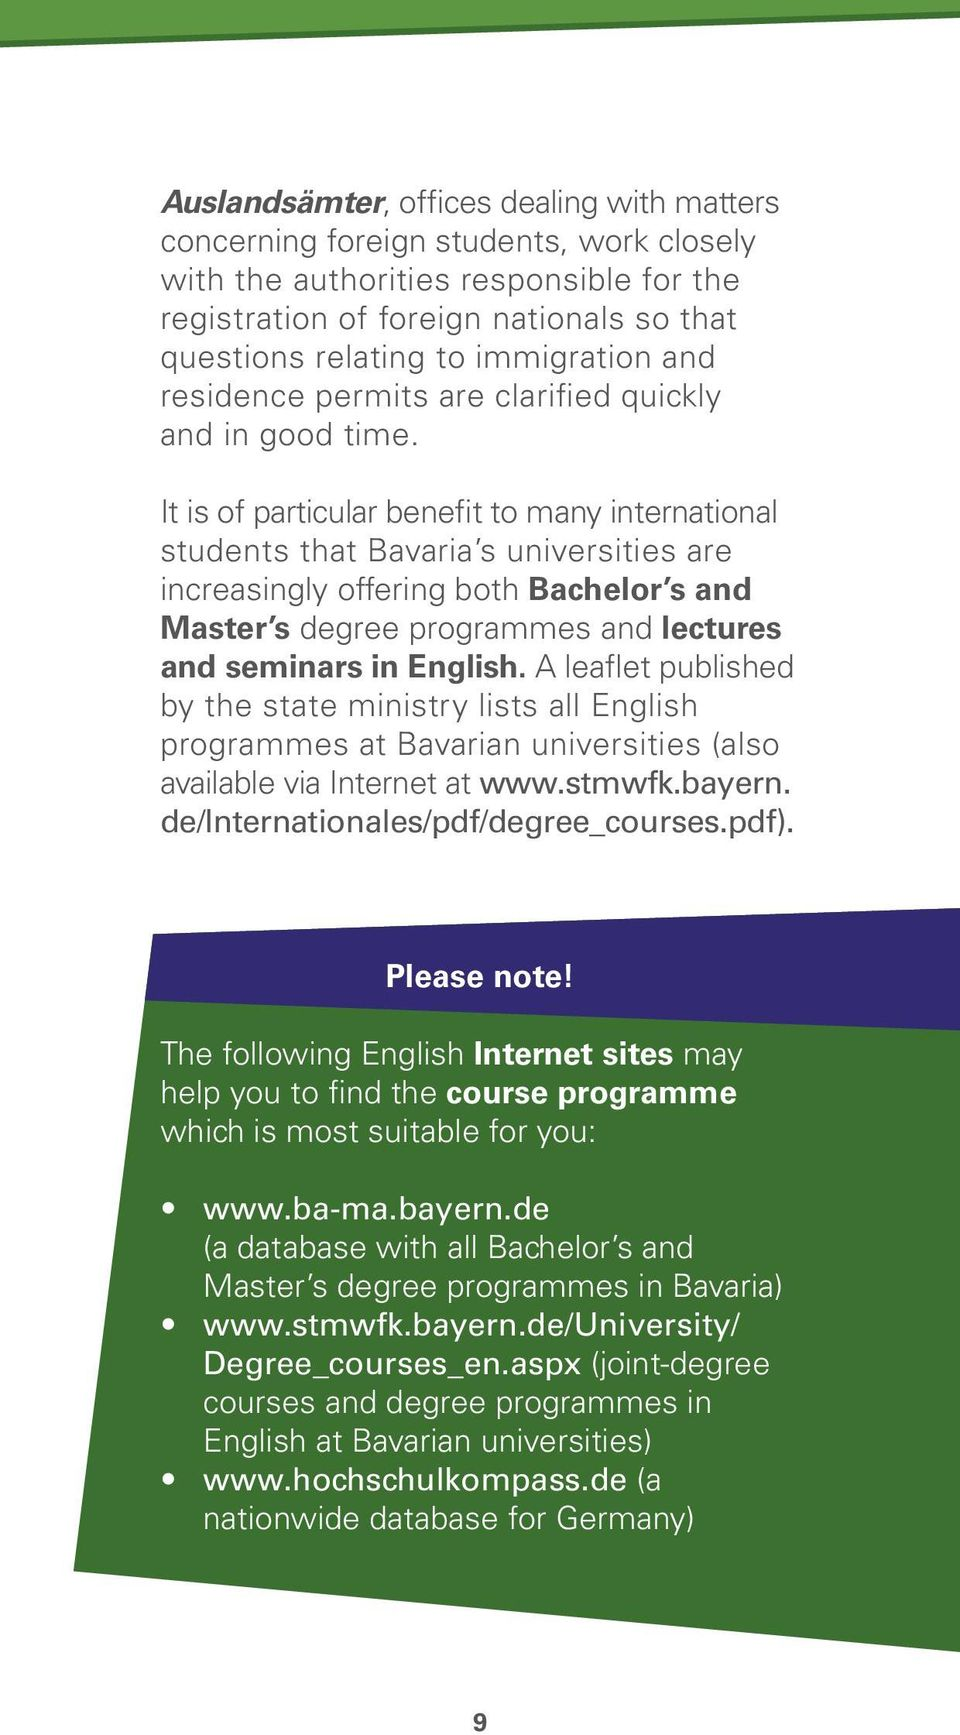 It is of particular benefit to many international students that Bavaria s universities are increasingly offering both Bachelor s and Master s degree programmes and lectures and seminars in English.